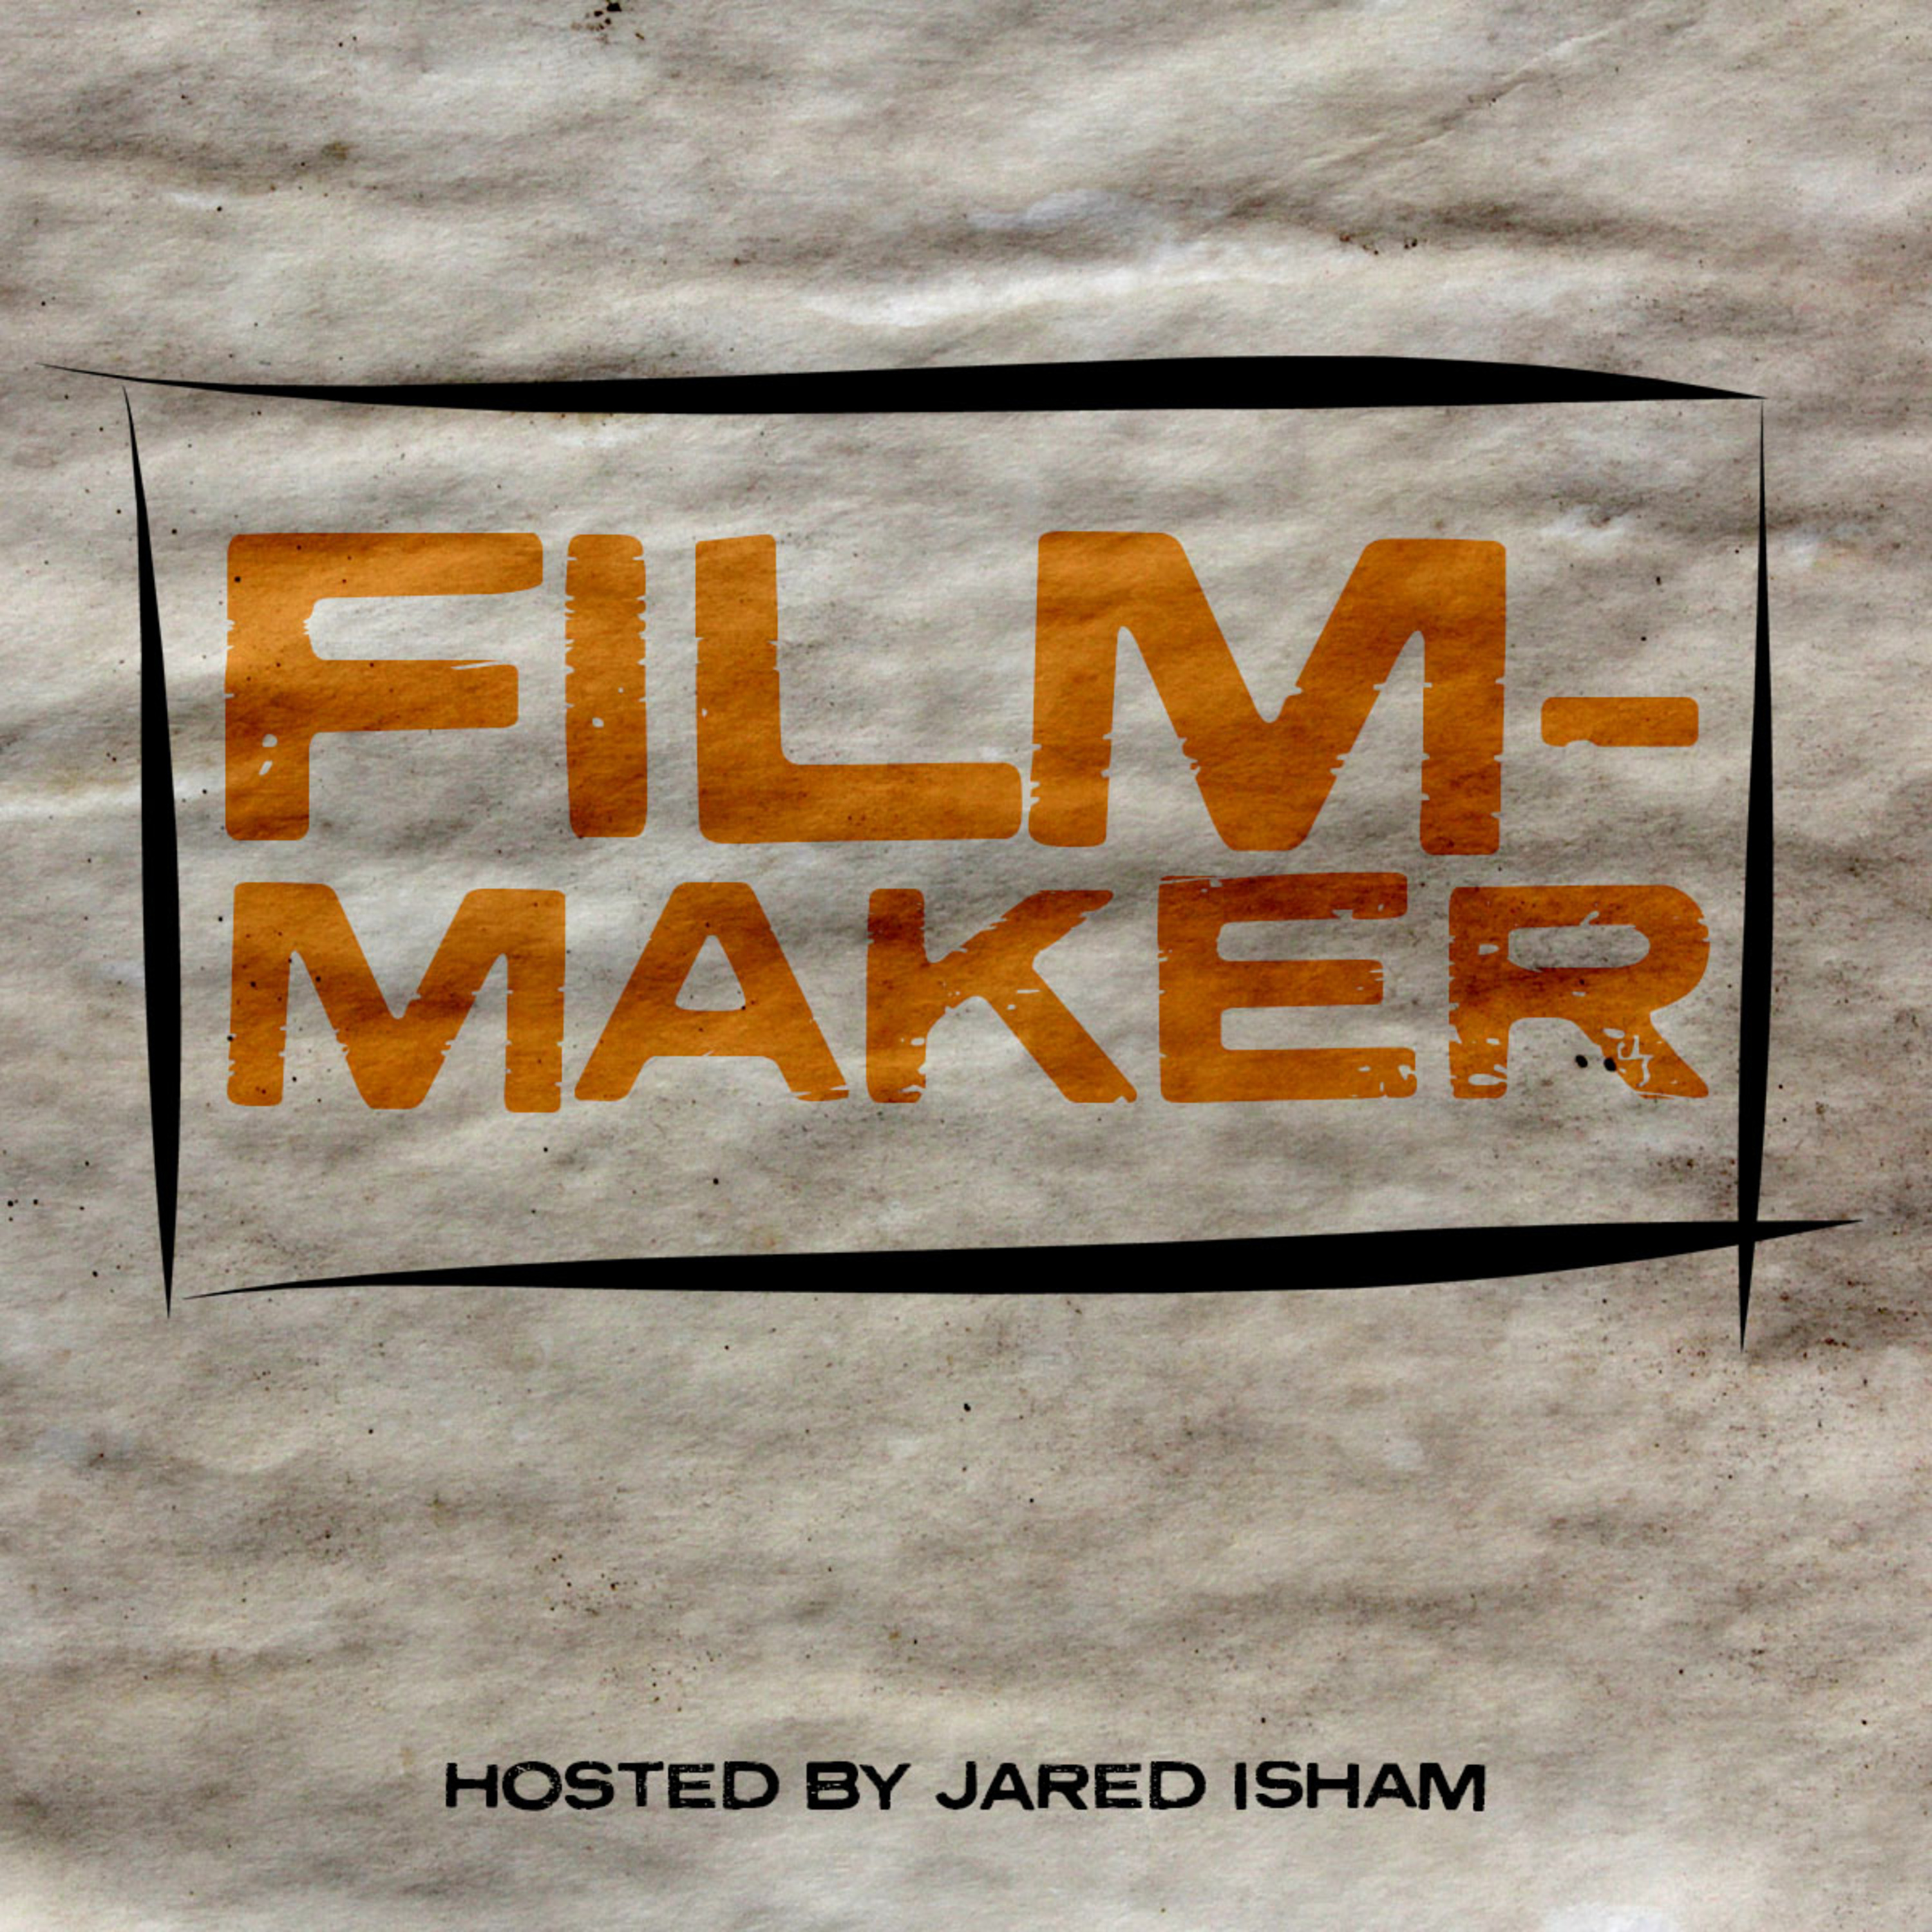 TRAILER: A new podcast about everything filmmaking